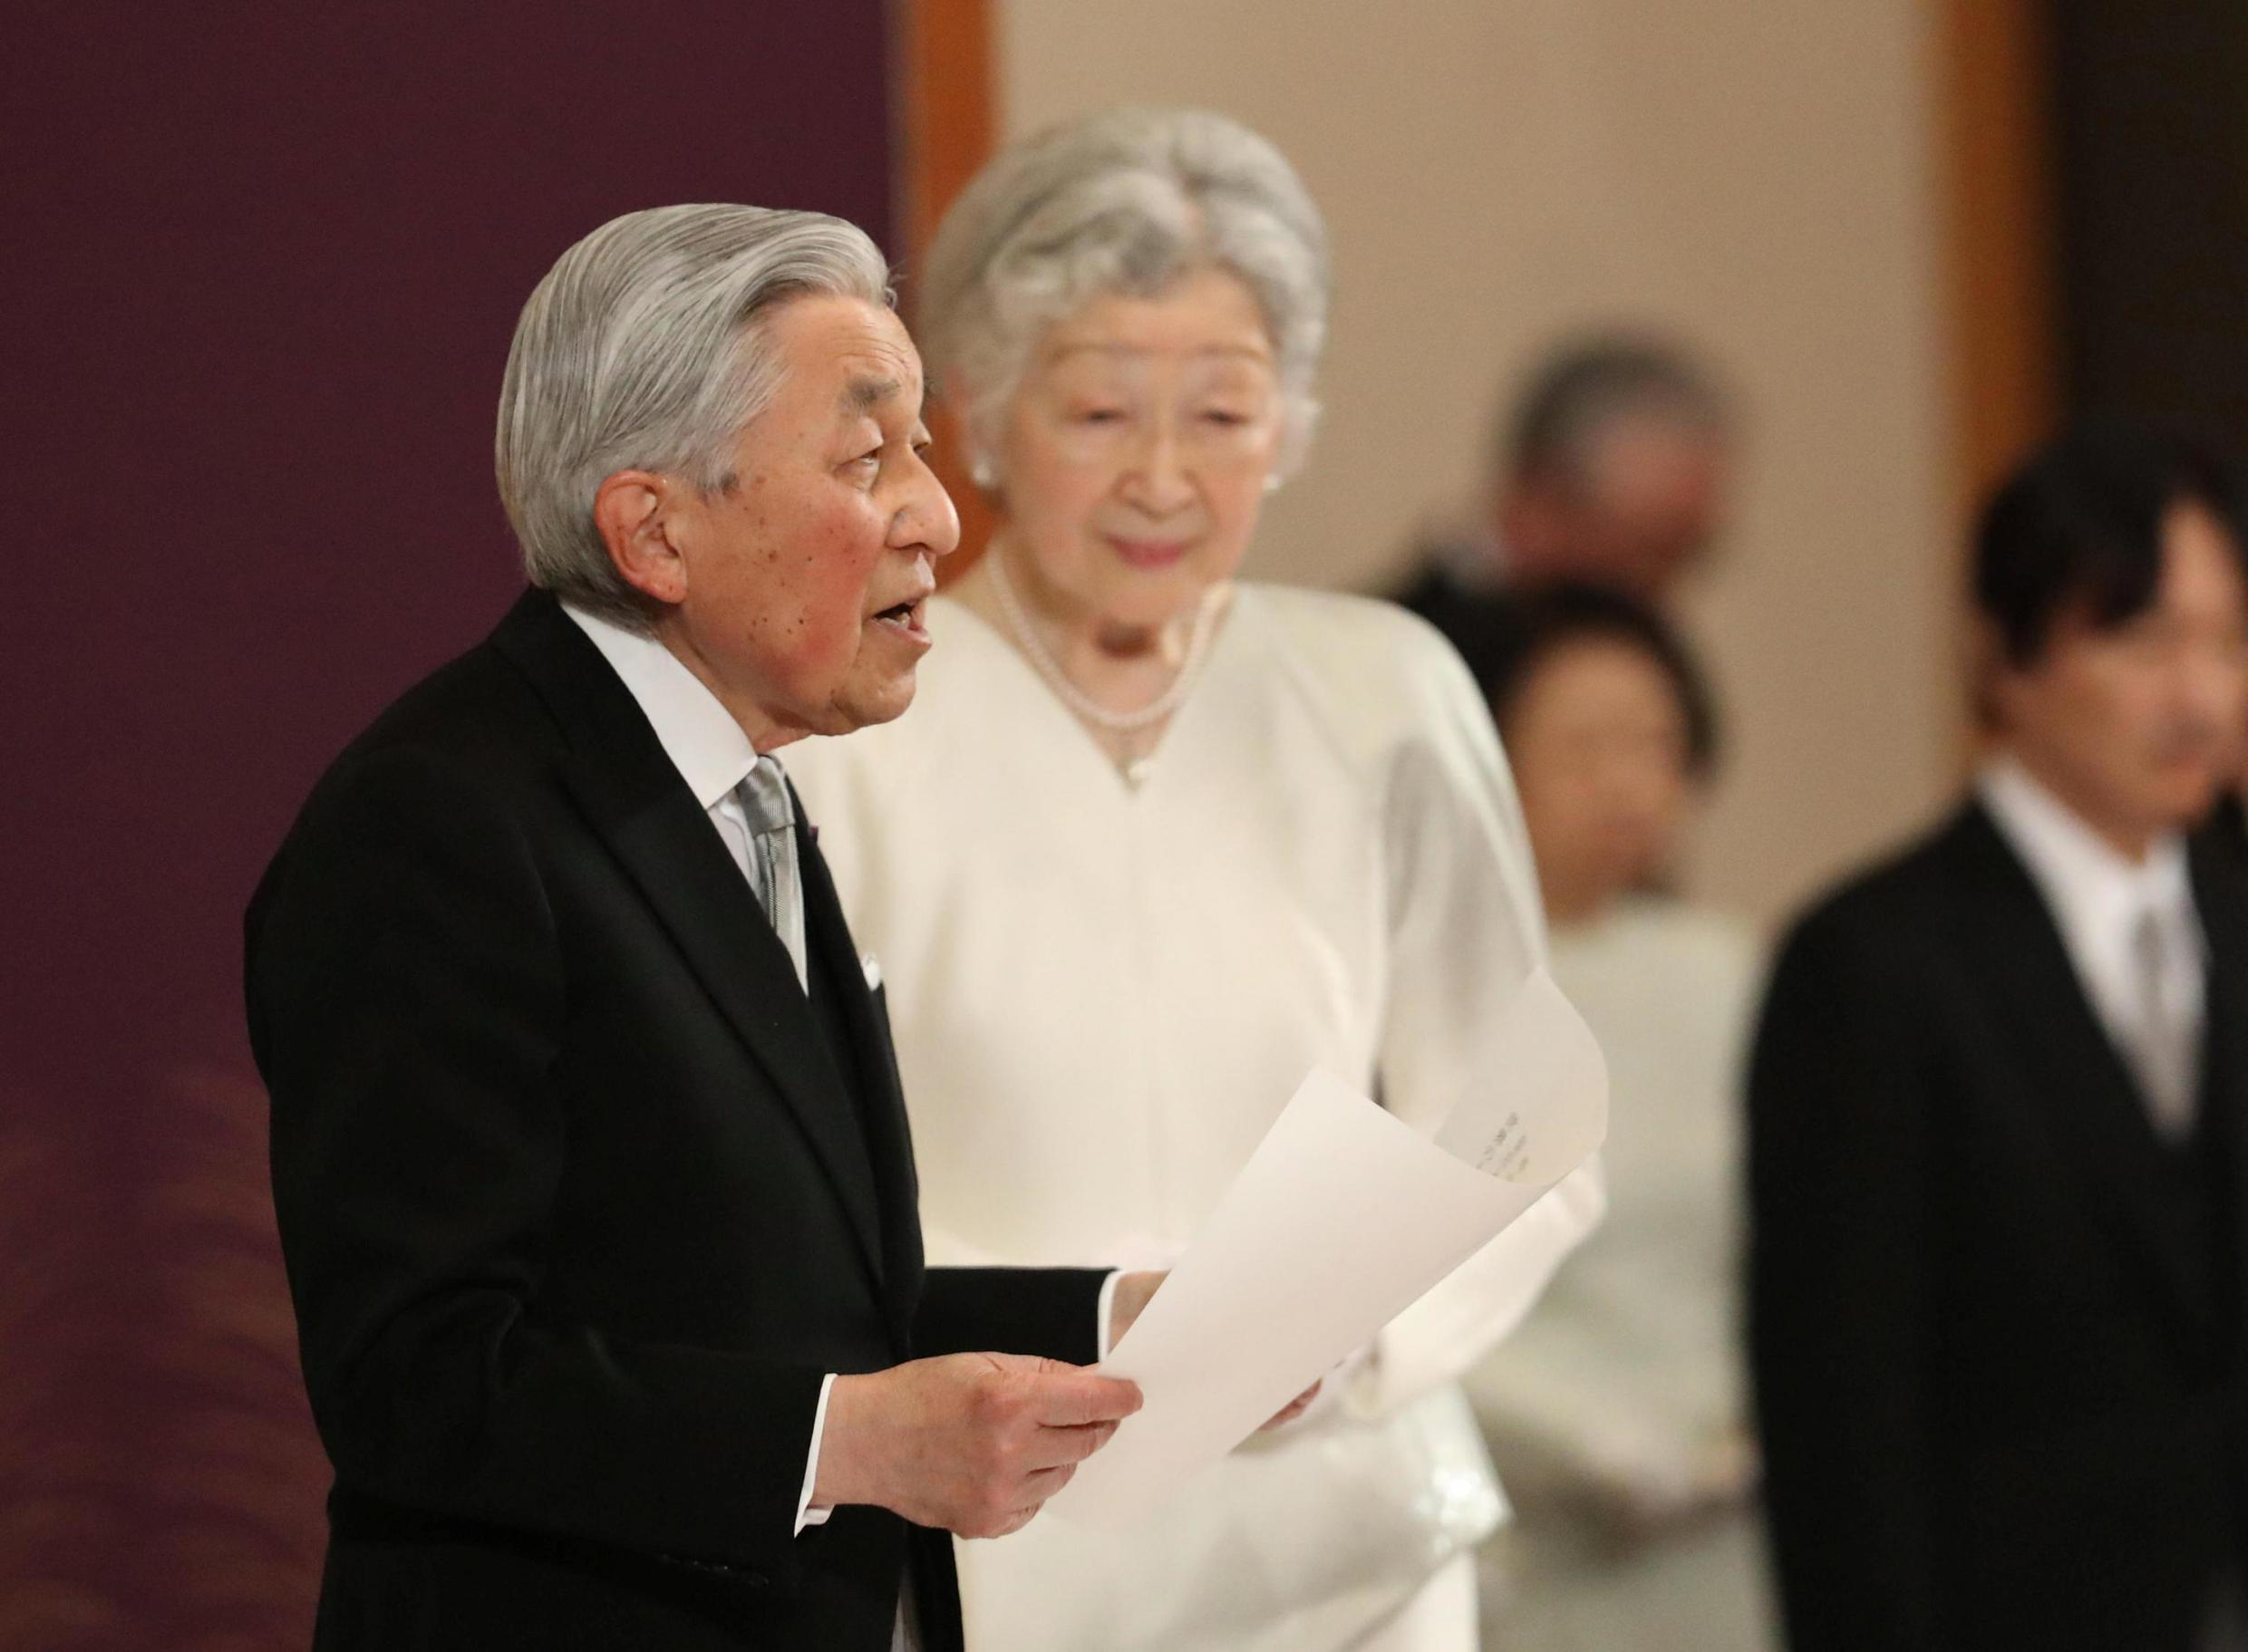 Akihito, here with his spouse Michiko, during the abdication ceremony, April 30, 2019 in Tokyo.